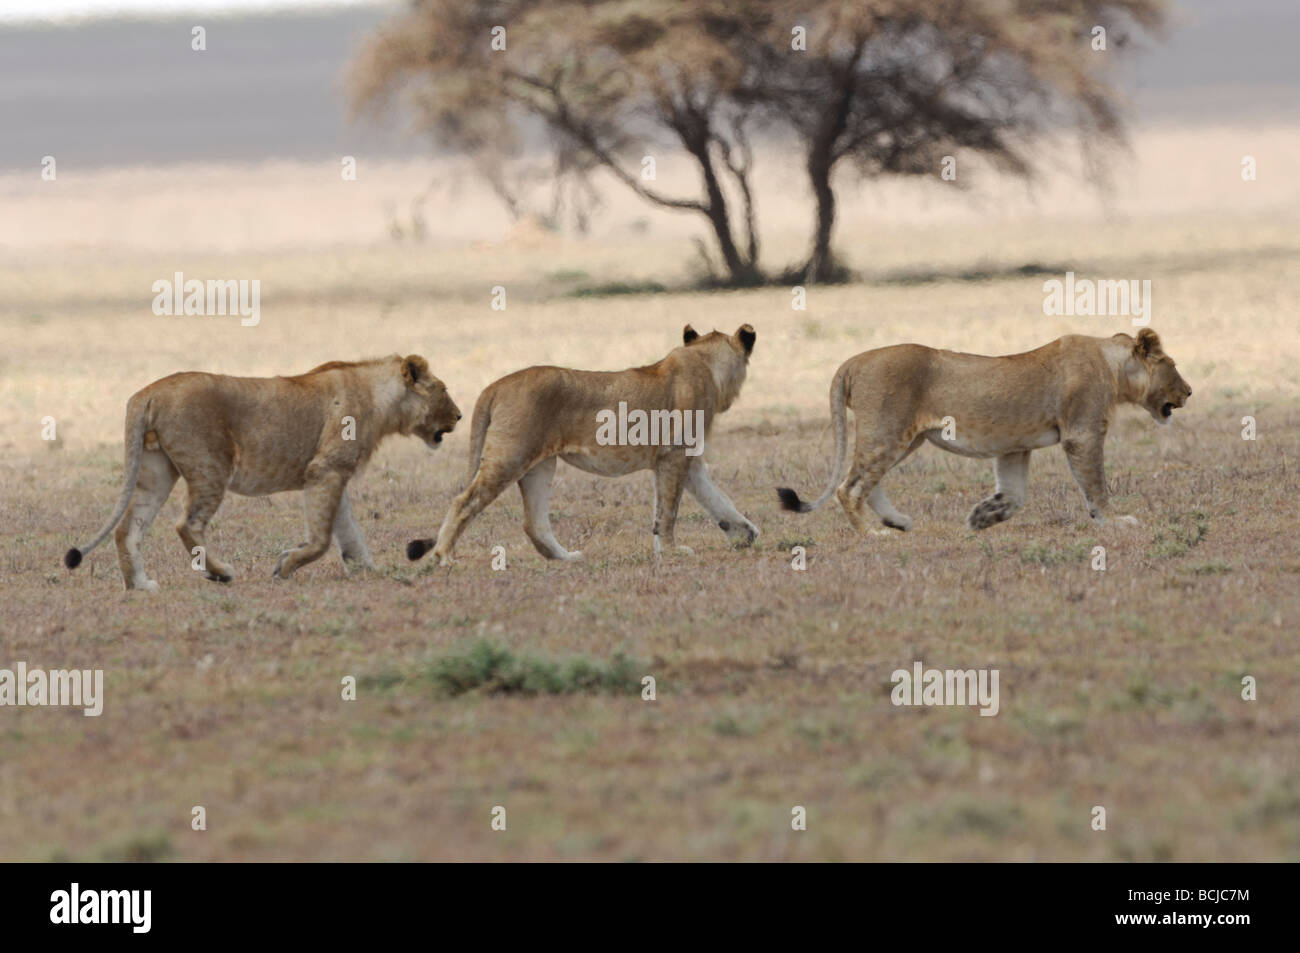 Stock photo of lions walking across a dry, barren plain, Serengeti National Park, Tanzania, February 2009. - Stock Image